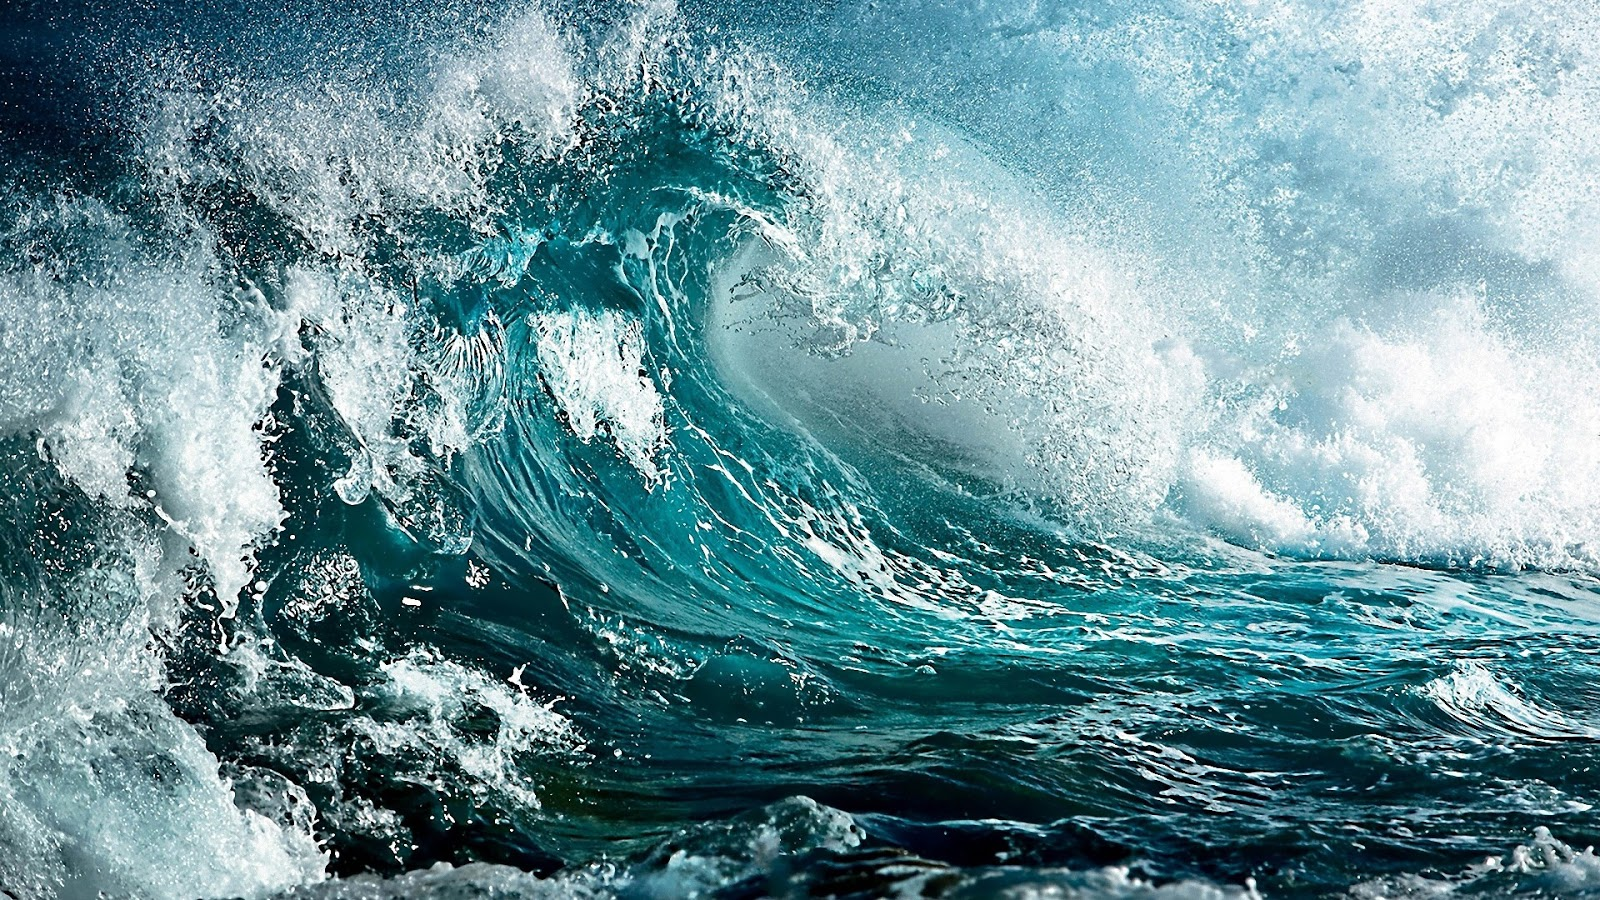 ocean waves cool hd